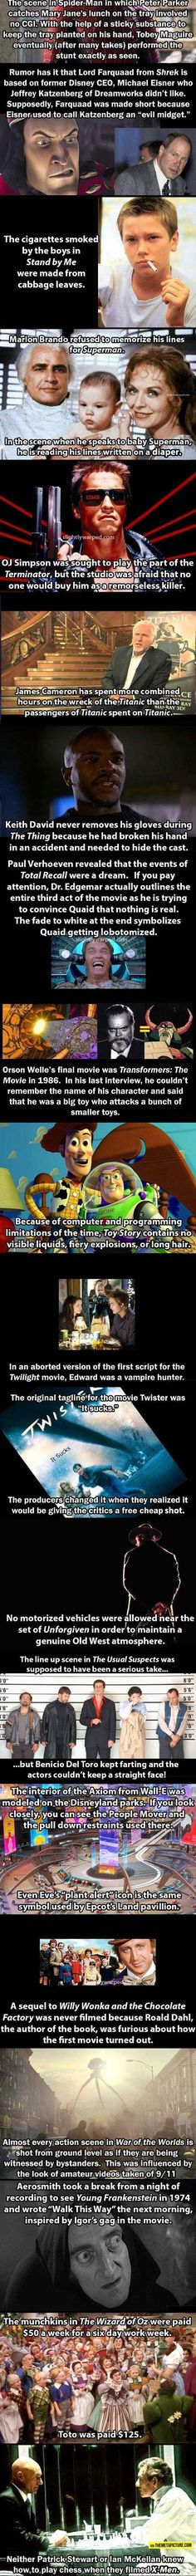 Movie facts you probably didn't know… I didn't